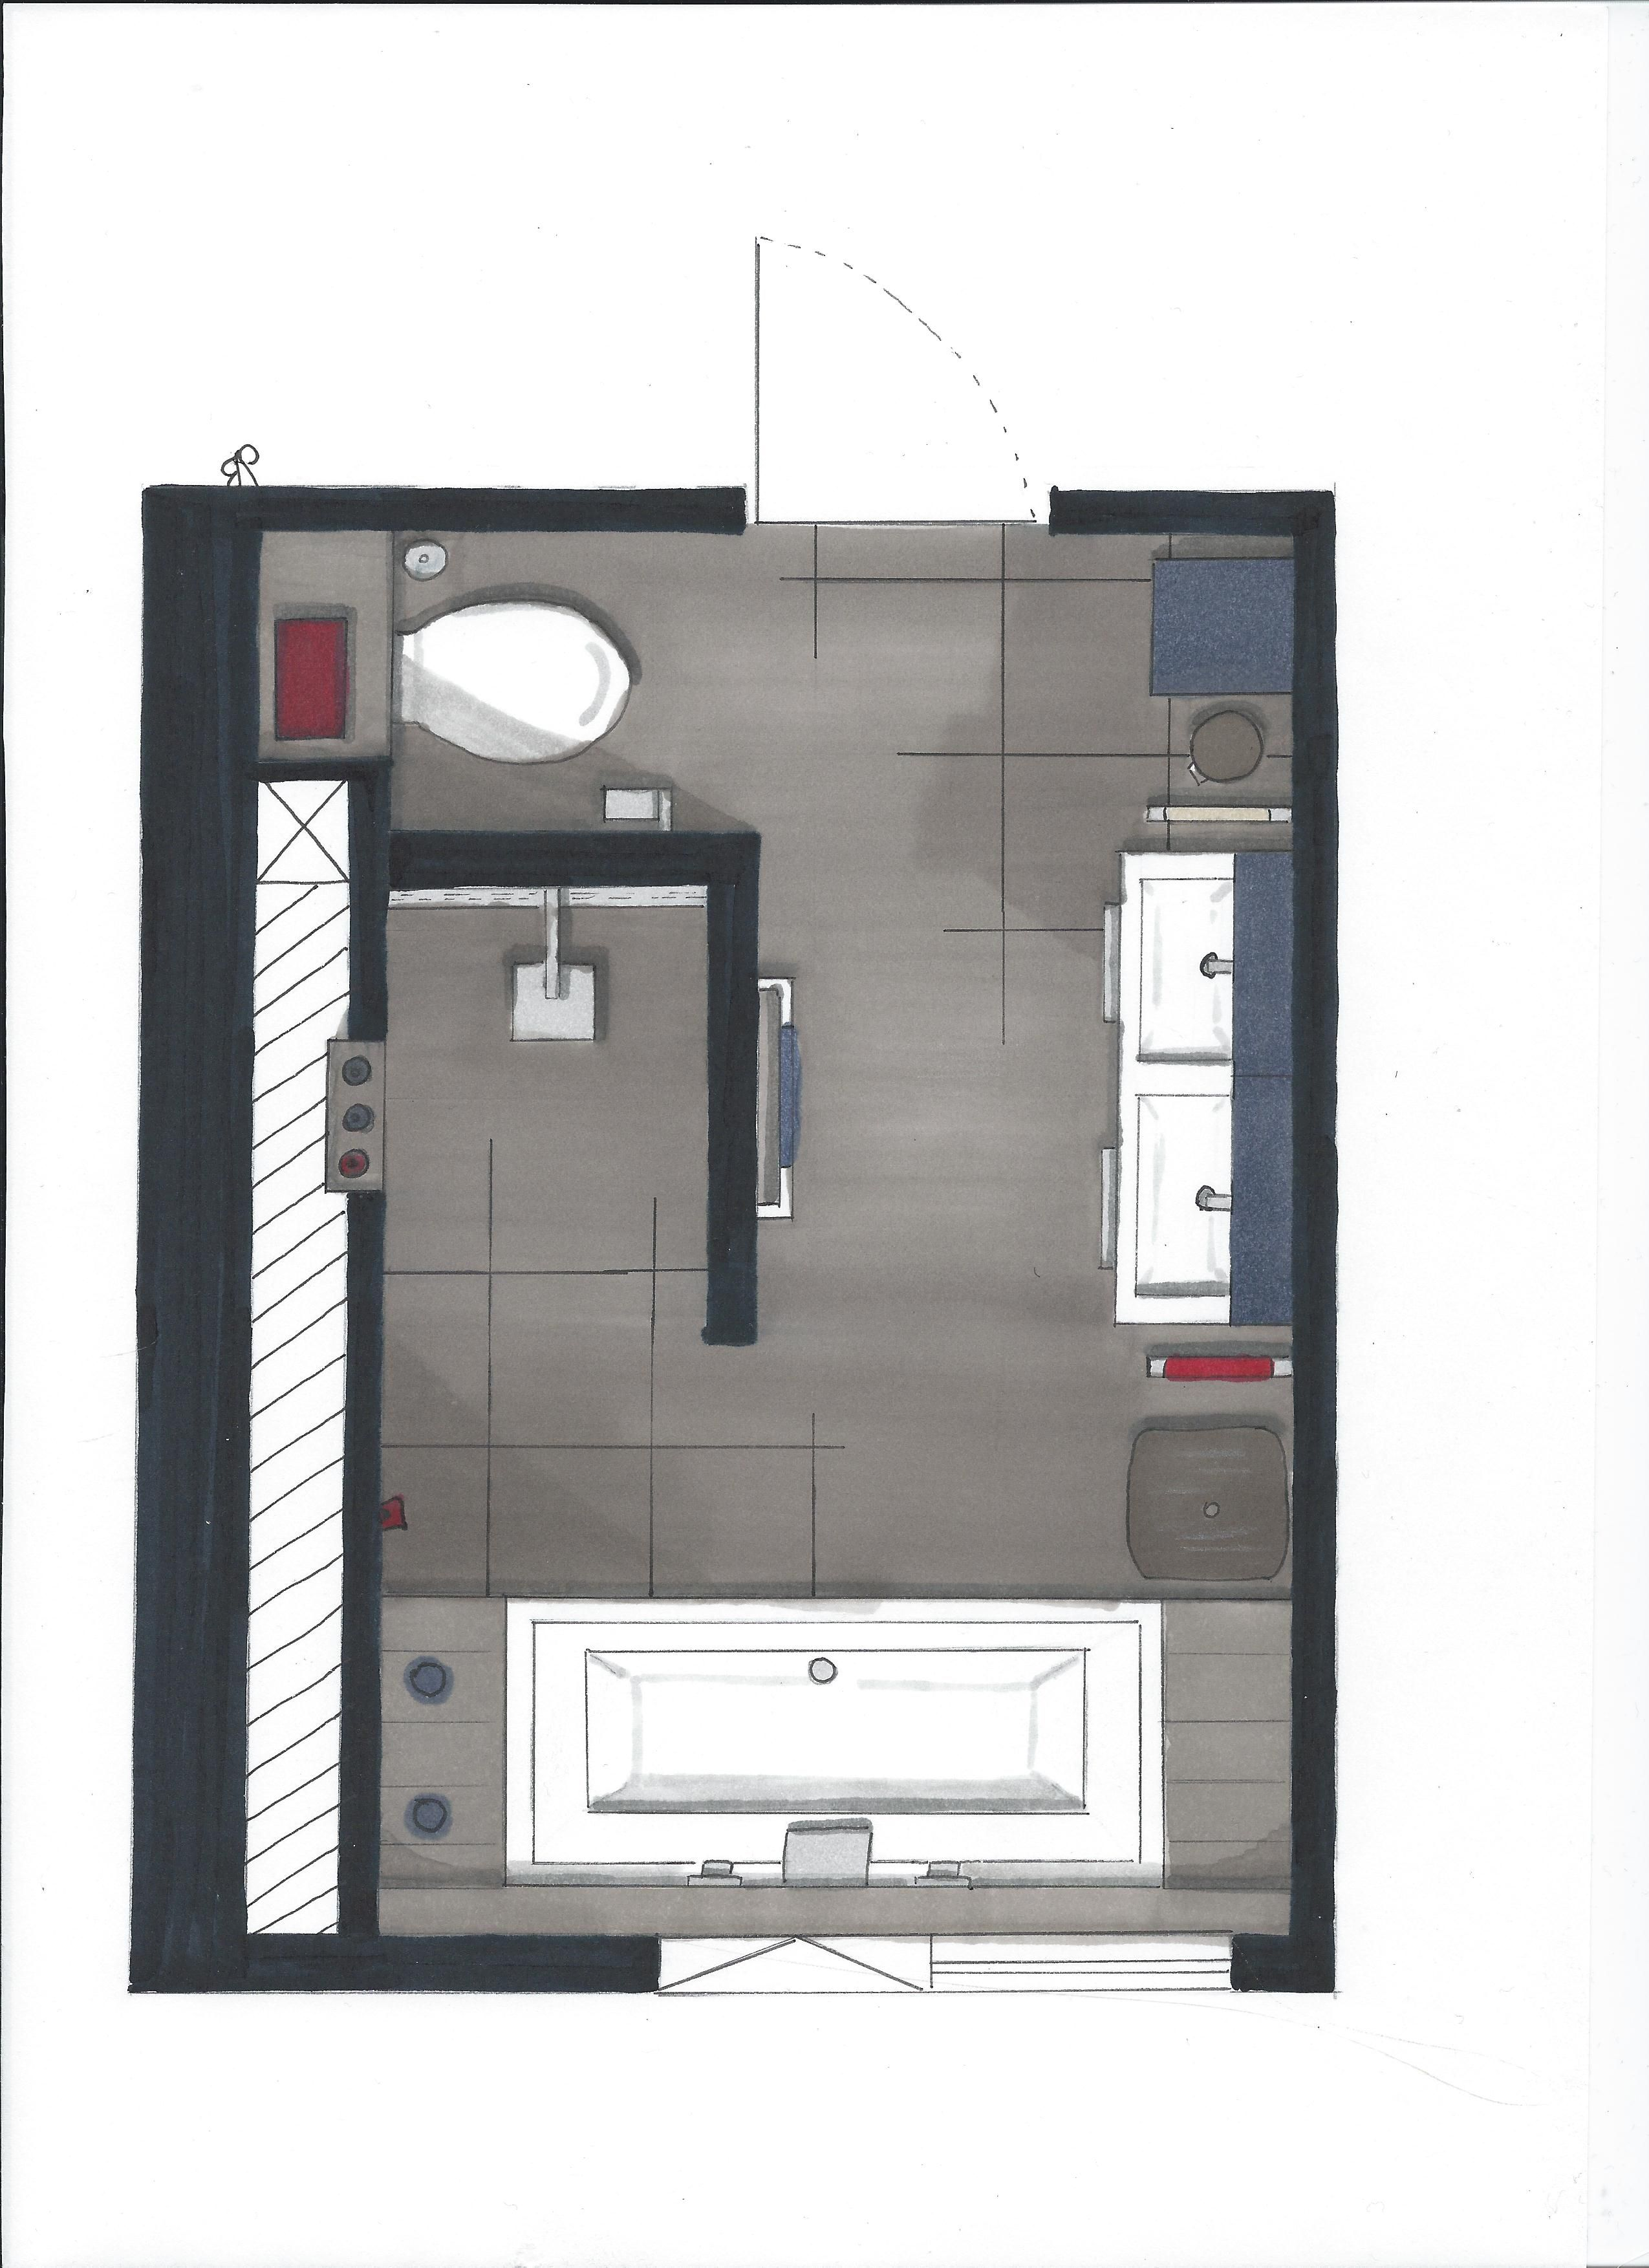 plattegrond badkamer inloopdouche bad dubbele wastafel en apart toilet badkamer bathroom. Black Bedroom Furniture Sets. Home Design Ideas